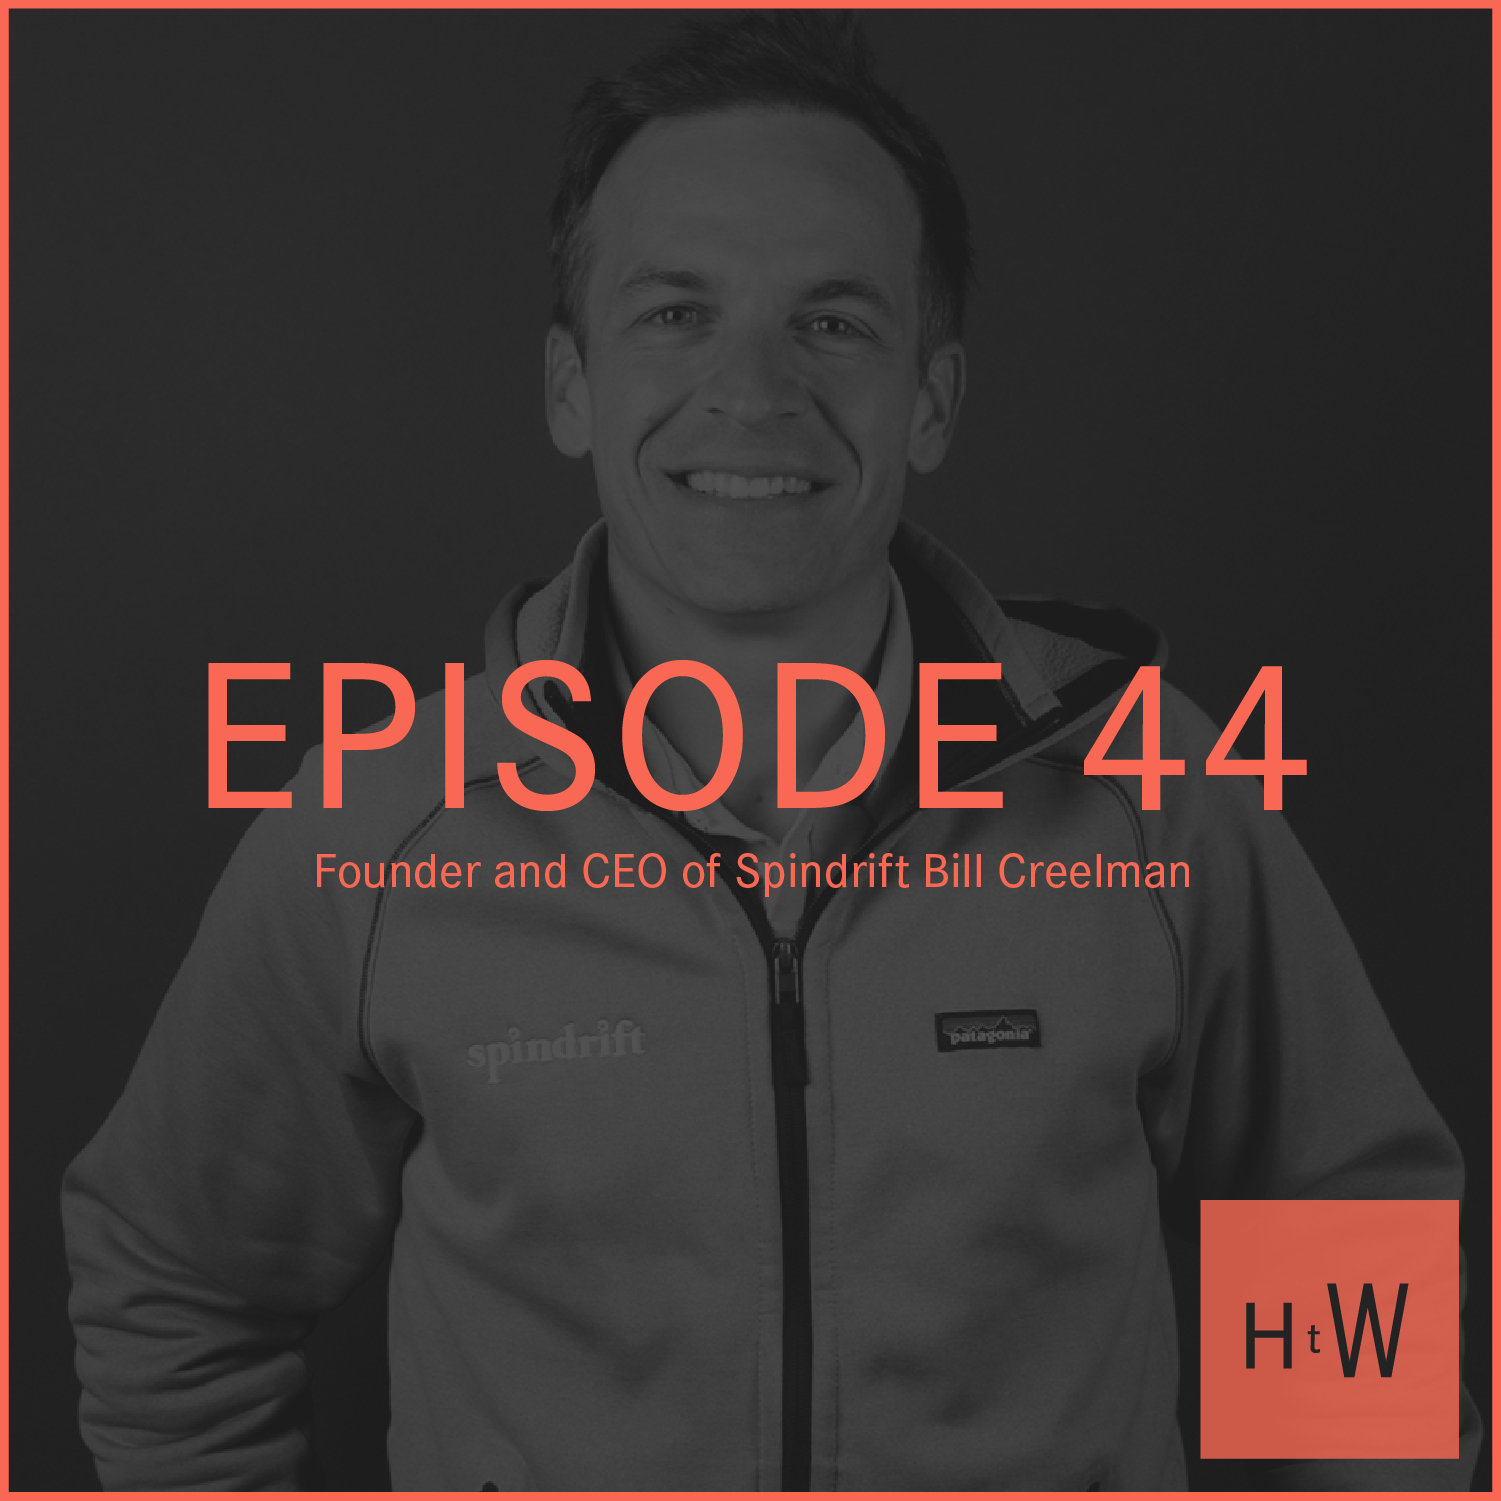 EPISODE 44 :  Bill Creelman, Founder and CEO of Spindrift on All Things Startup